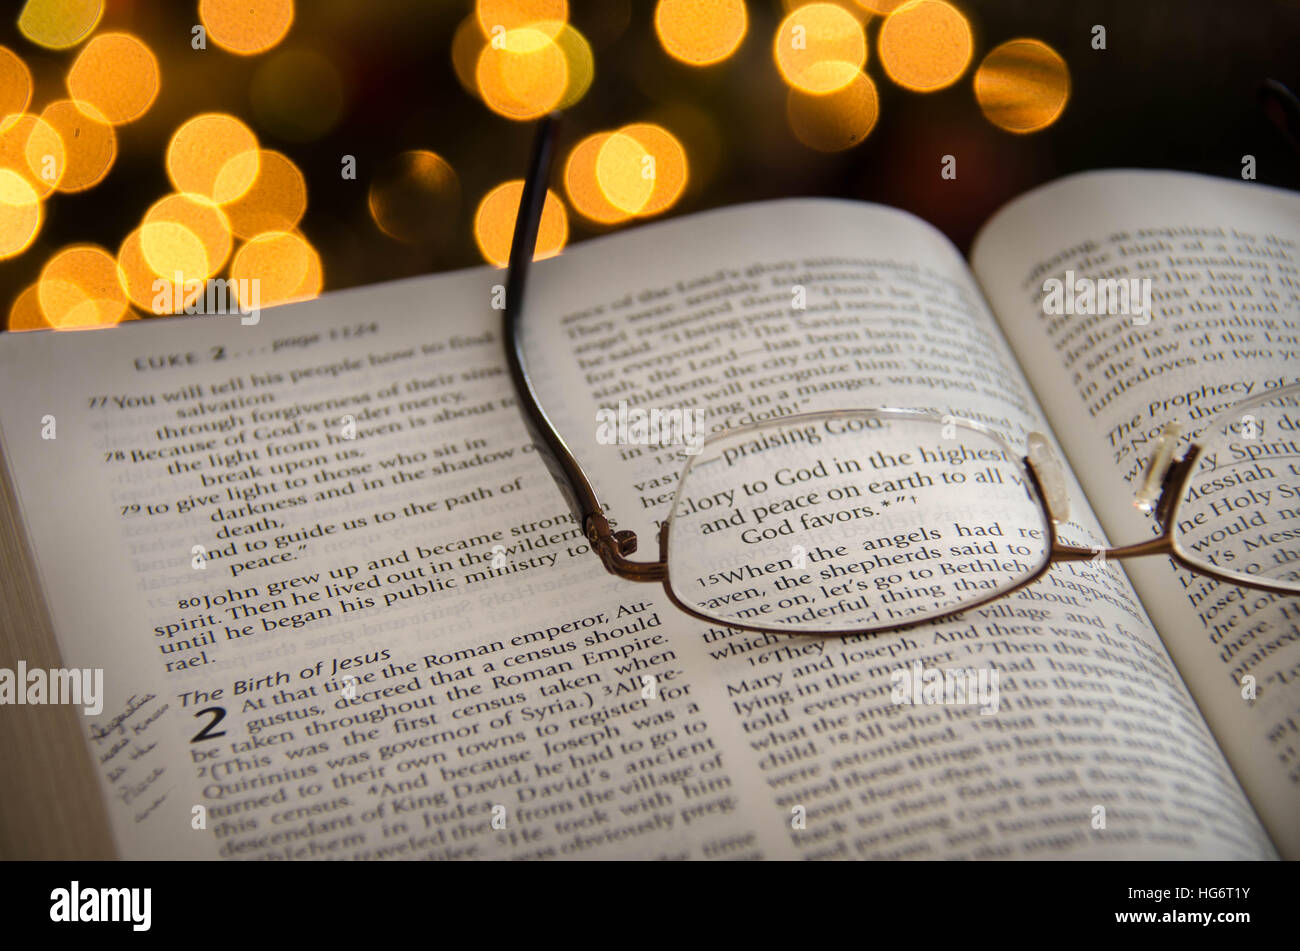 Bible Christmas Story.An Open Bible With Highlighted Verse On The Christmas Story